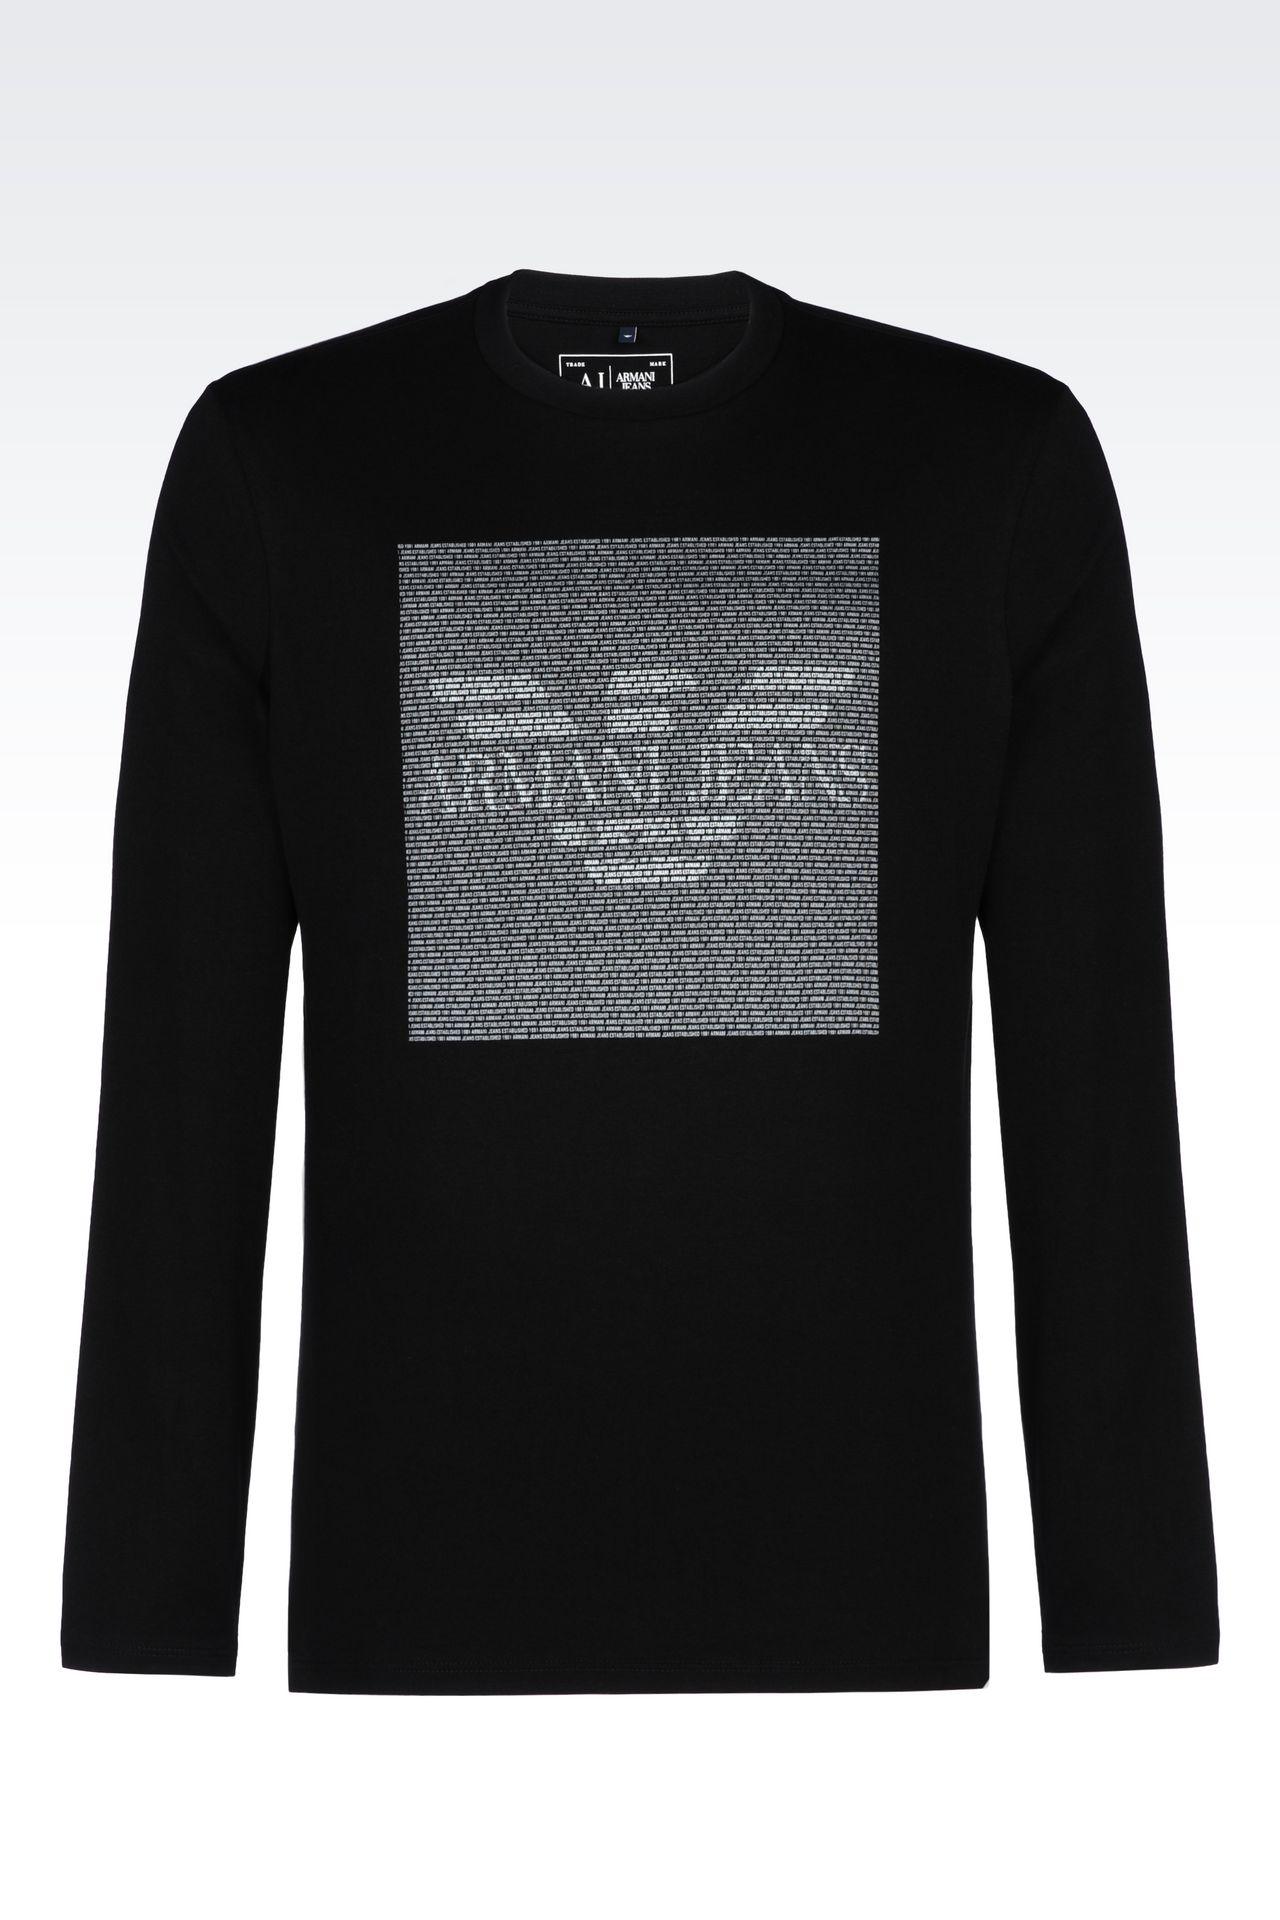 jersey t shirt print t shirts men by armani 0. Black Bedroom Furniture Sets. Home Design Ideas